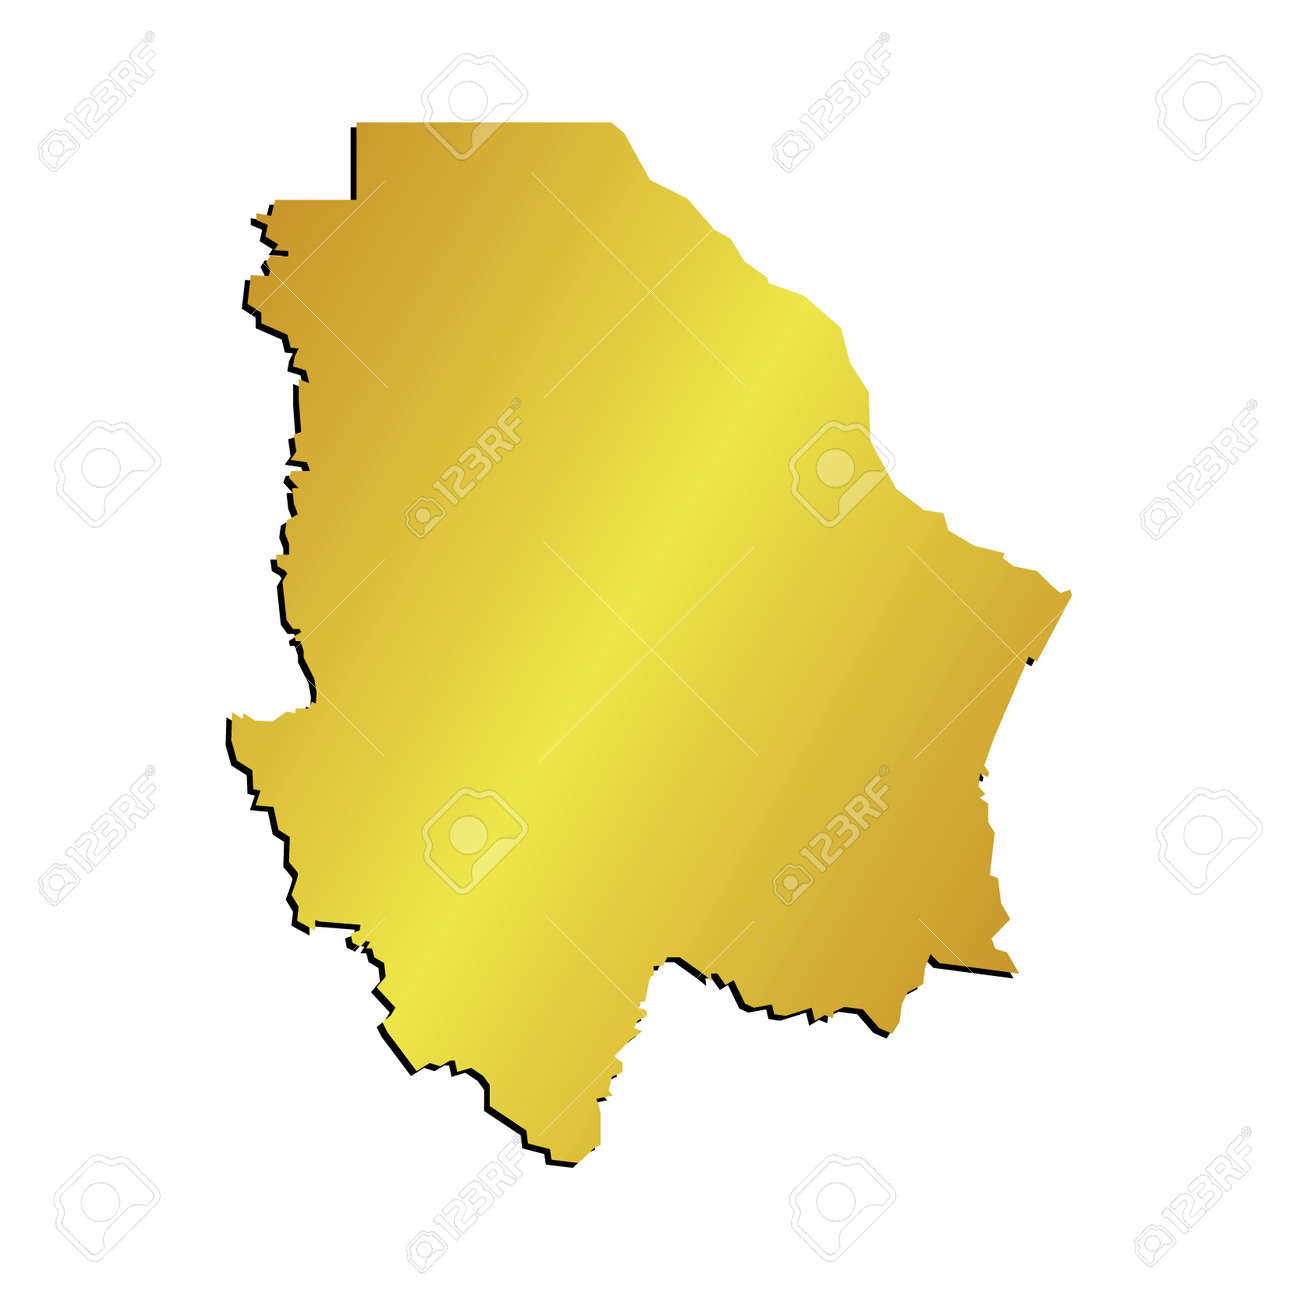 3d Chihuahua Mexico State Map Gold Vector Outline Royalty Free